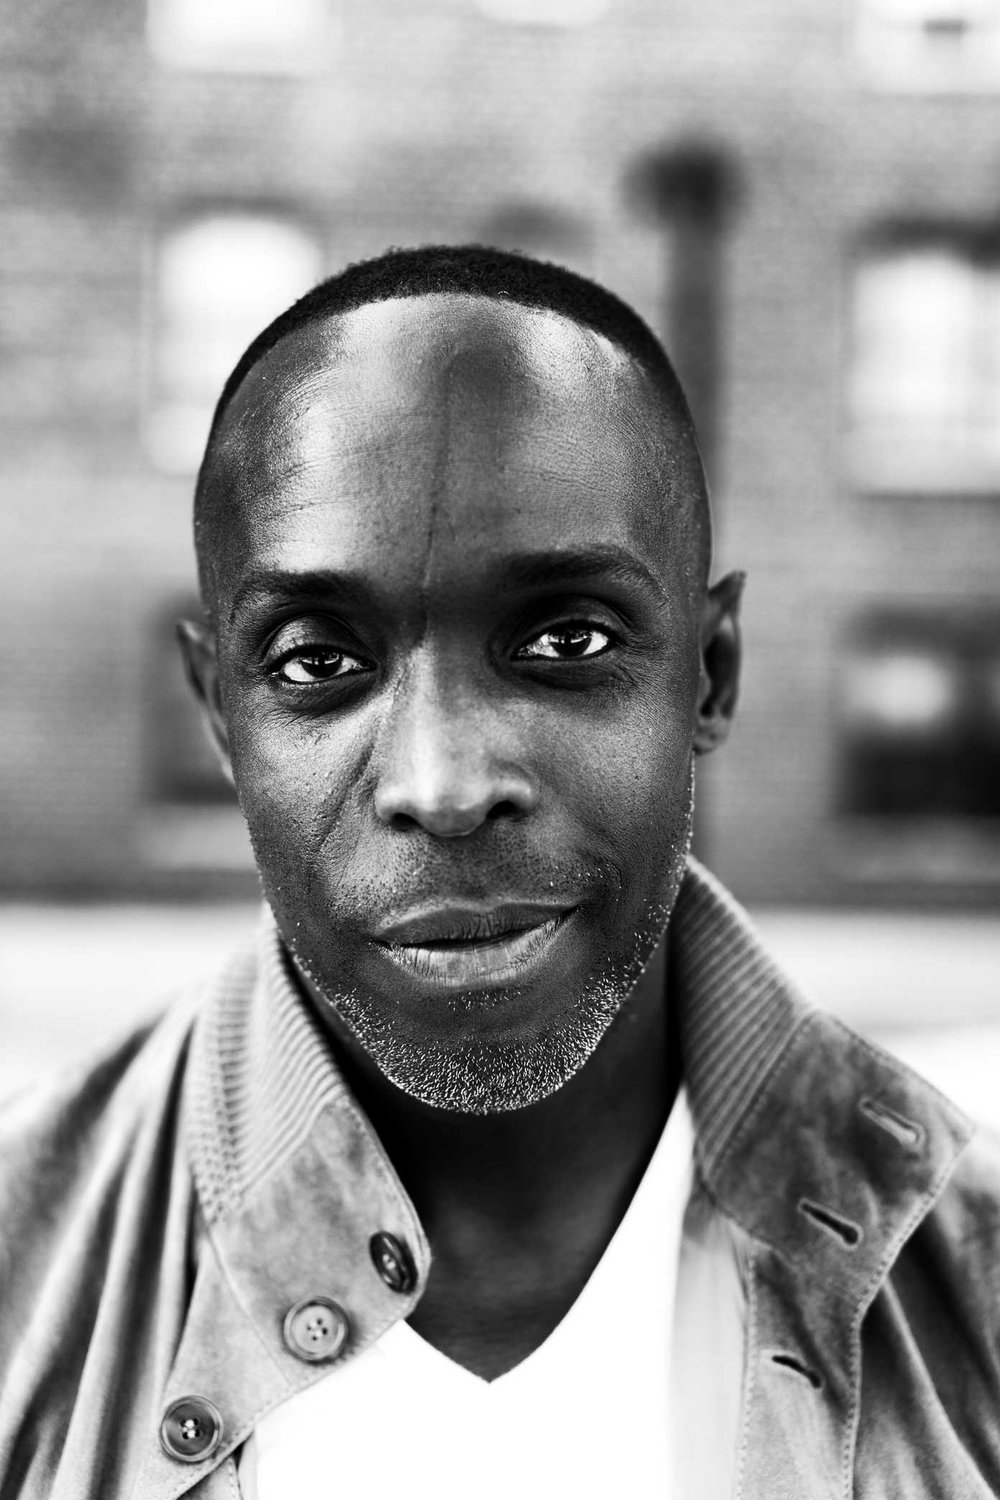 Michael K. Williams Is More Than Omar From 'The Wire'   Mr. Williams has made a career of bringing nuance and contrast to his roles, inspired by the swaggering characters he grew up with in East Flatbush.  Story can be found here at  The New York Times .